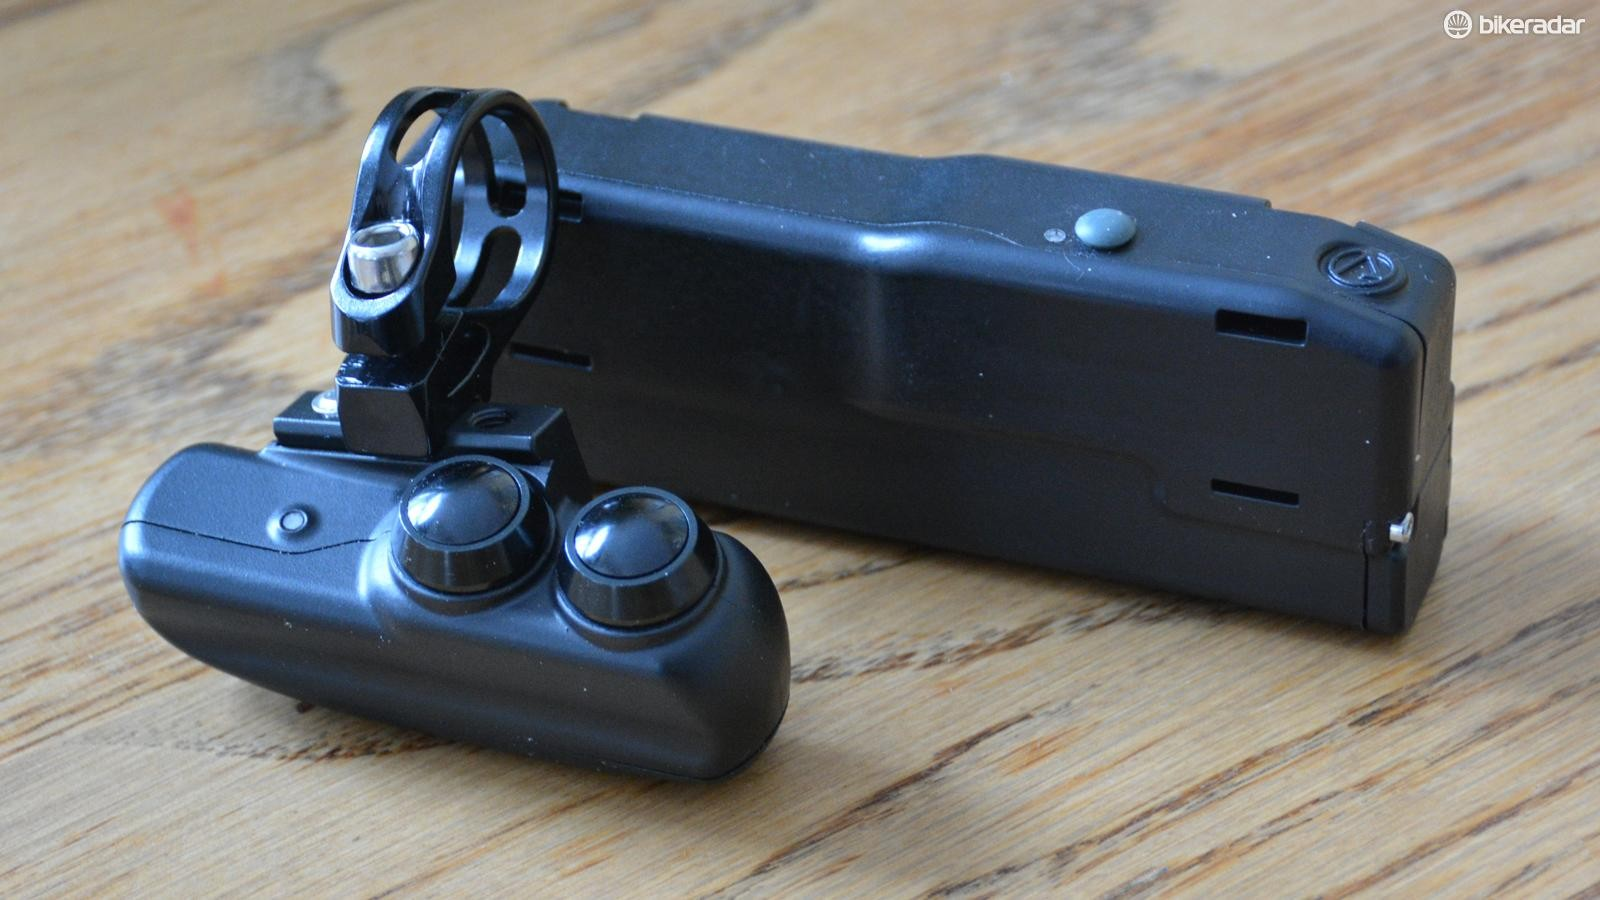 Archer Components D1x is a wireless shifter that's claimed to work with any drivetrain